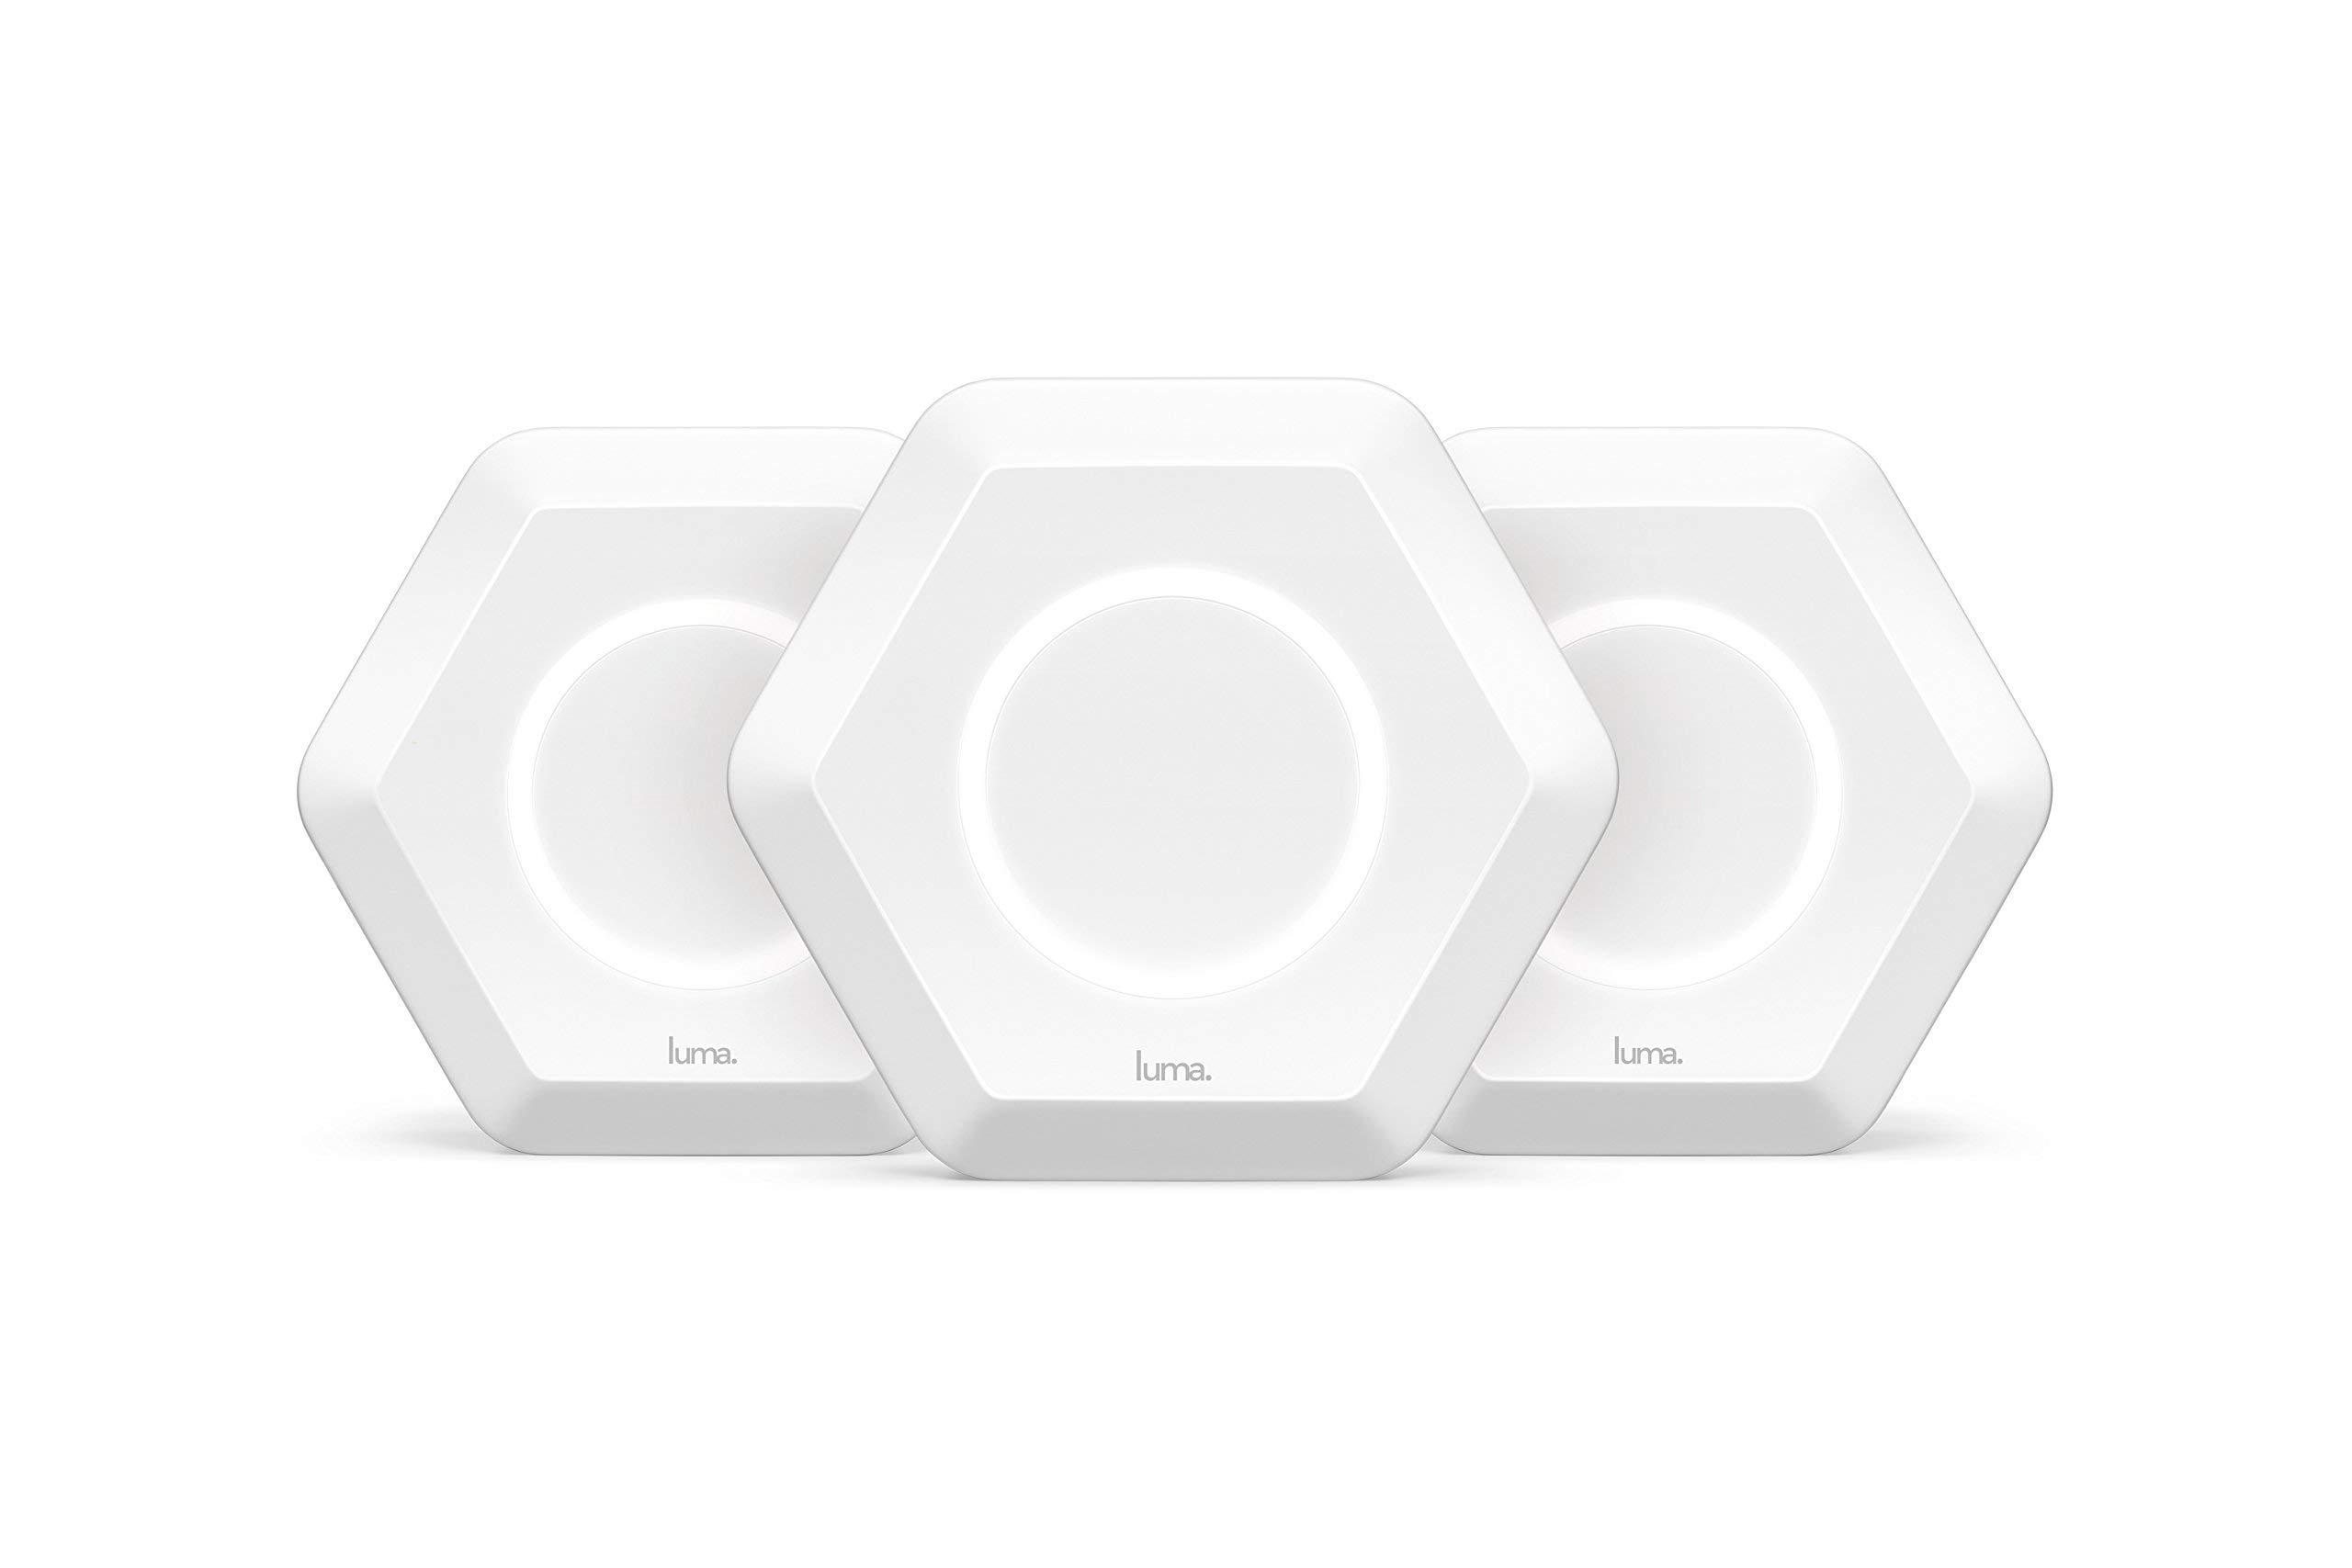 Luma Whole Home Wireless Router 3 Pack - Replaces Wi-Fi Extenders Routers, Free Virus Blocking, Free Parental Controls, Gigabit Speed, Dual Band, White (Renewed) by Luma